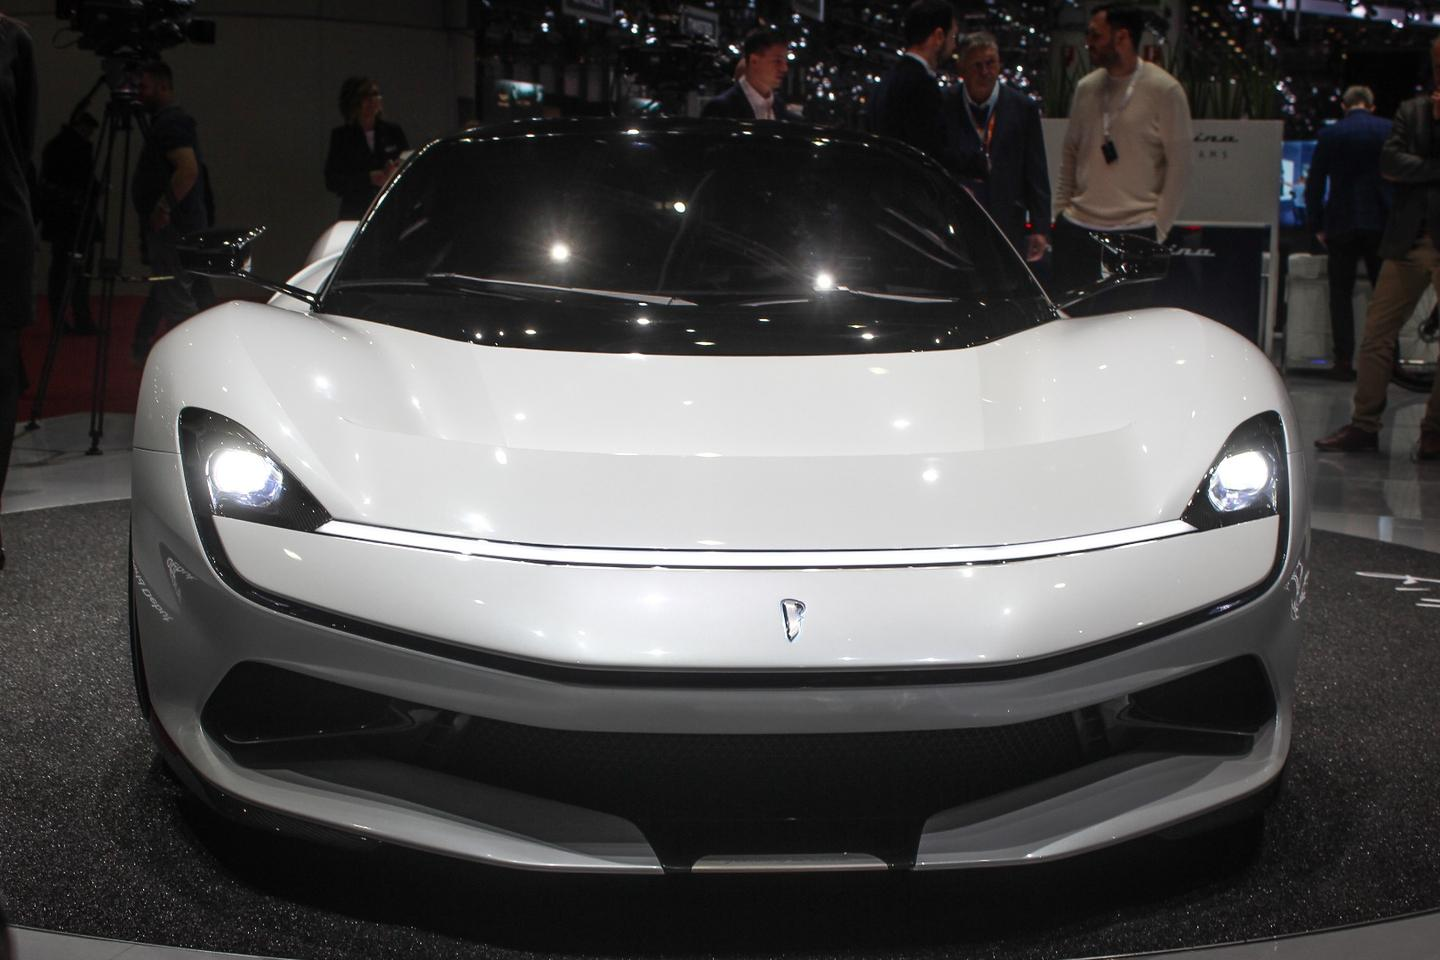 After much hype and anticipation, the Pininfarina Battista makes its world debut